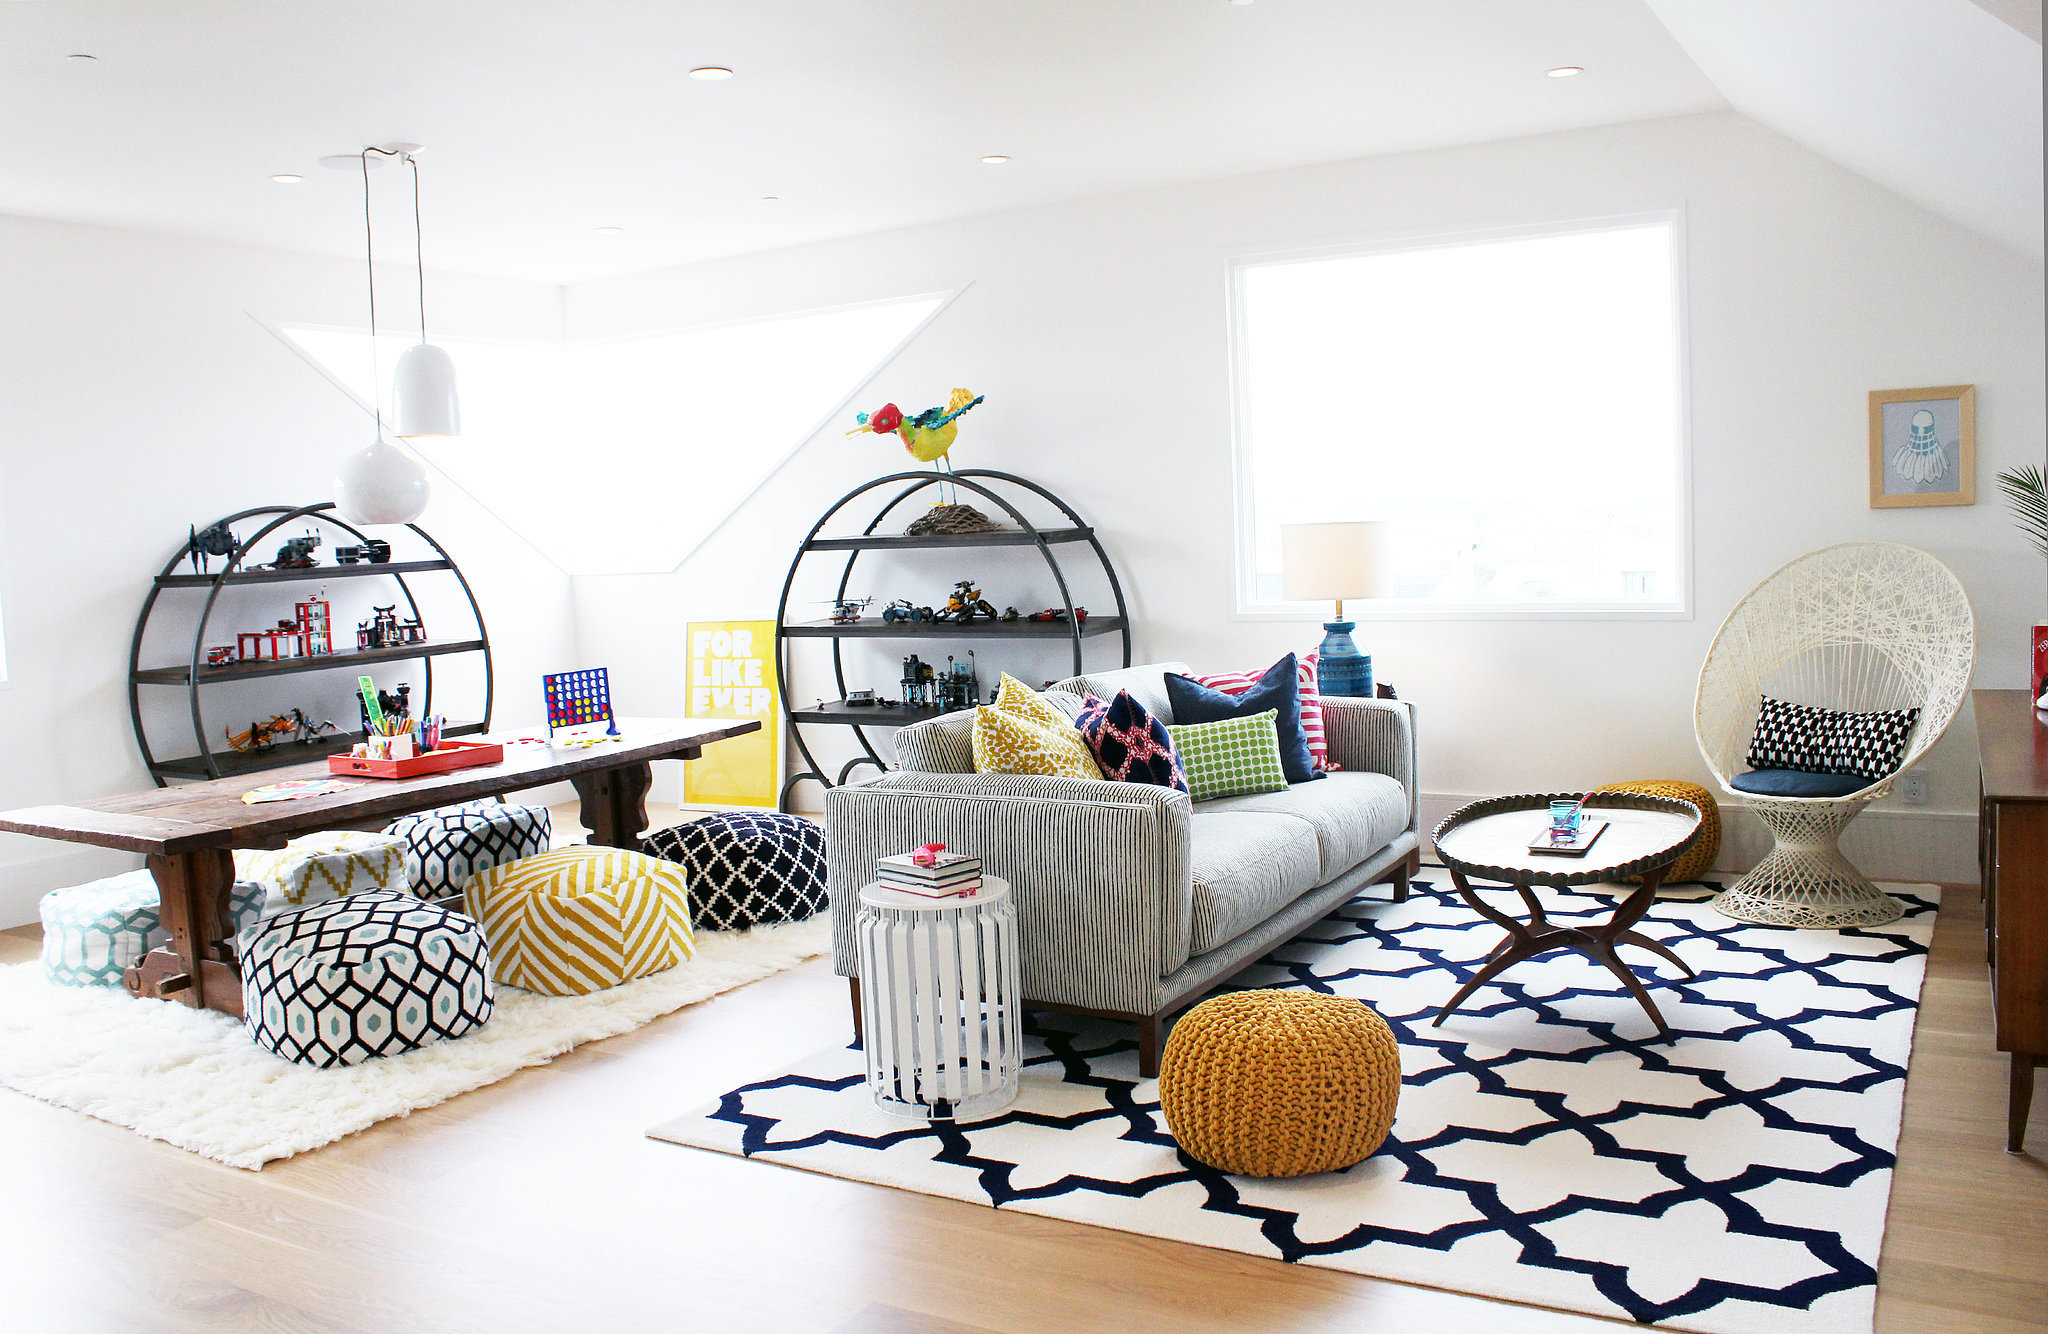 Online home decorating services popsugar home for Interior designers and decorators